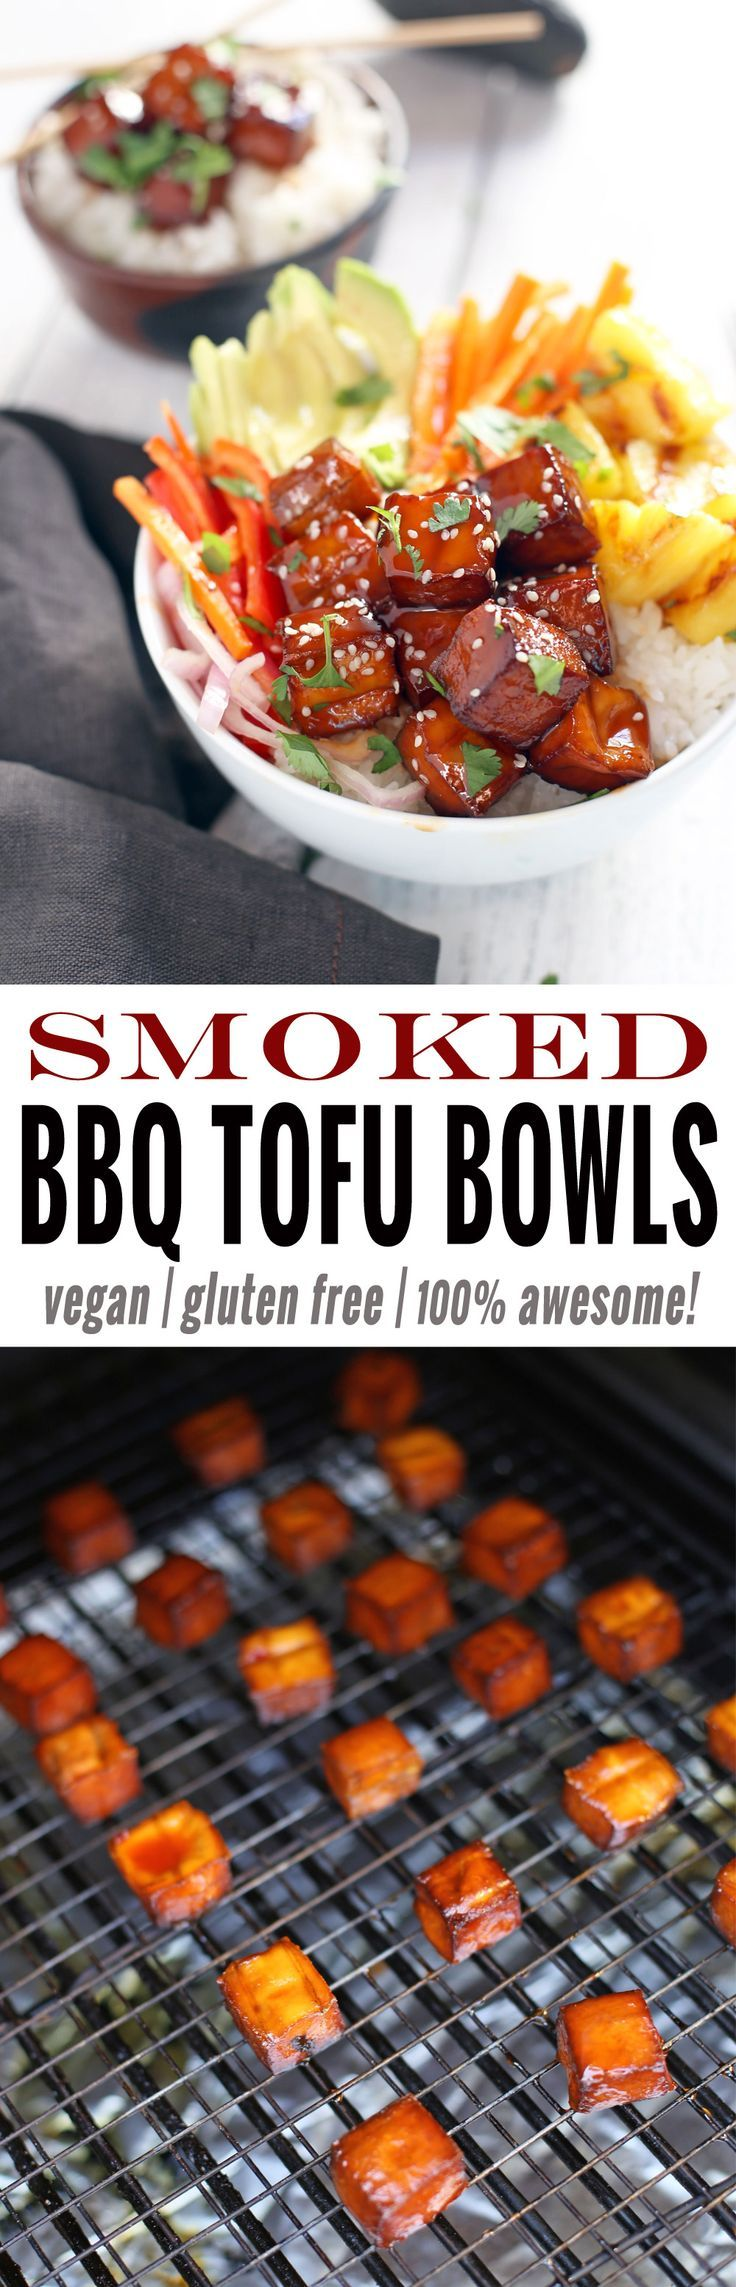 Smoked BBQ Tofu Bowls with grilled pineapple, vegan and gluten-free. An awesome bbq recipe sure to please vegans and meat-lovers alike!